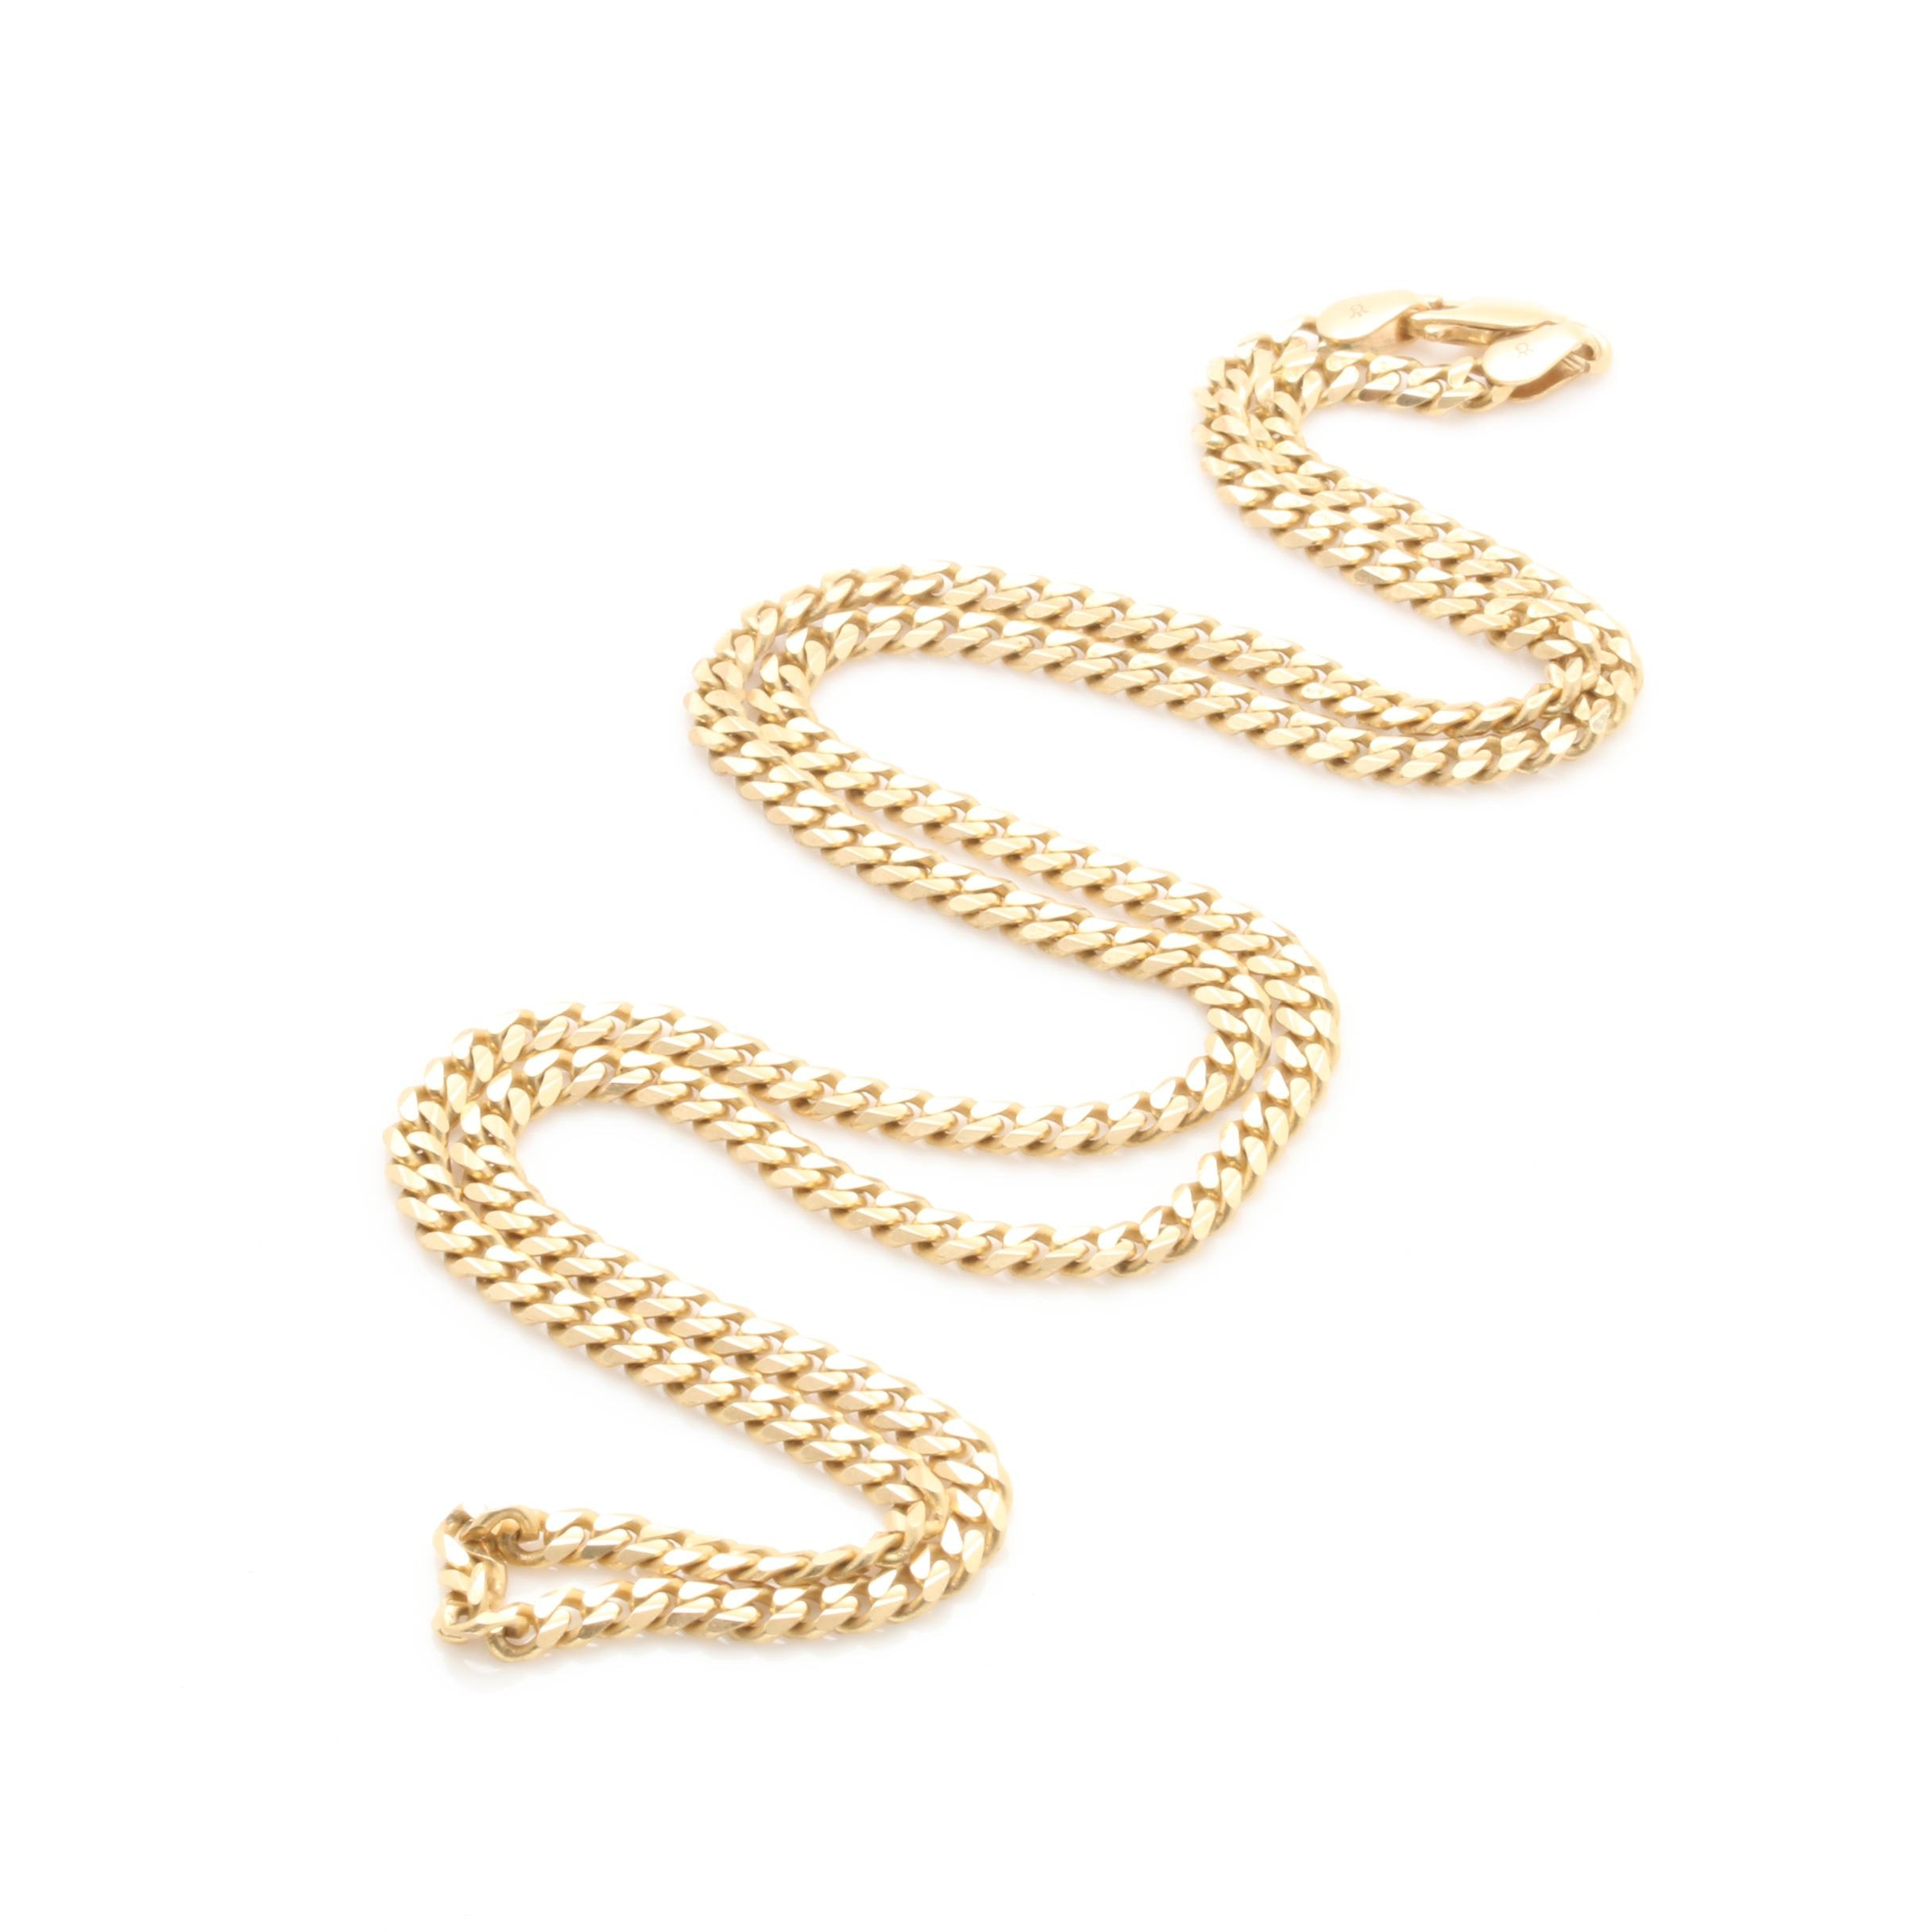 Italian 14K Yellow Gold Curb Chain Necklace